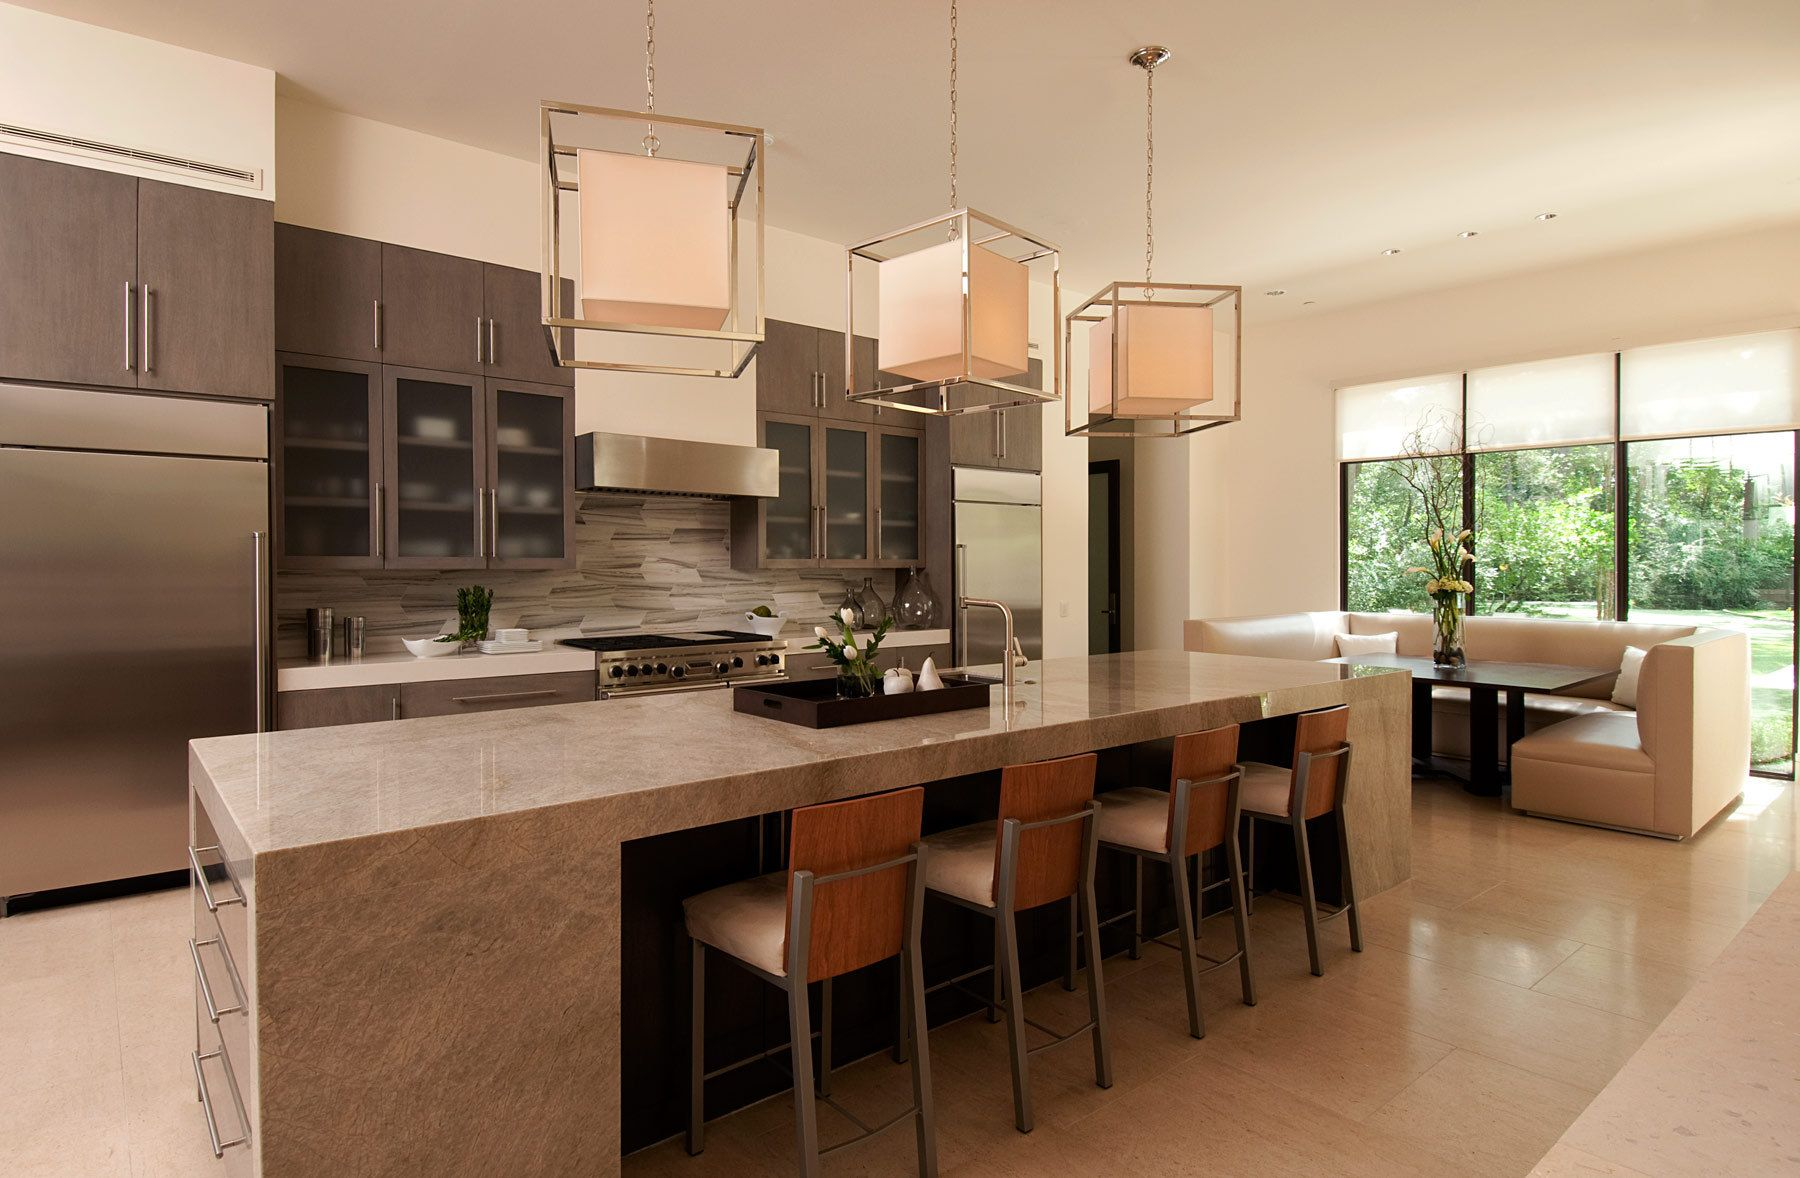 Best Innovative Modern American Kitchen Interior 2014 400 x 300